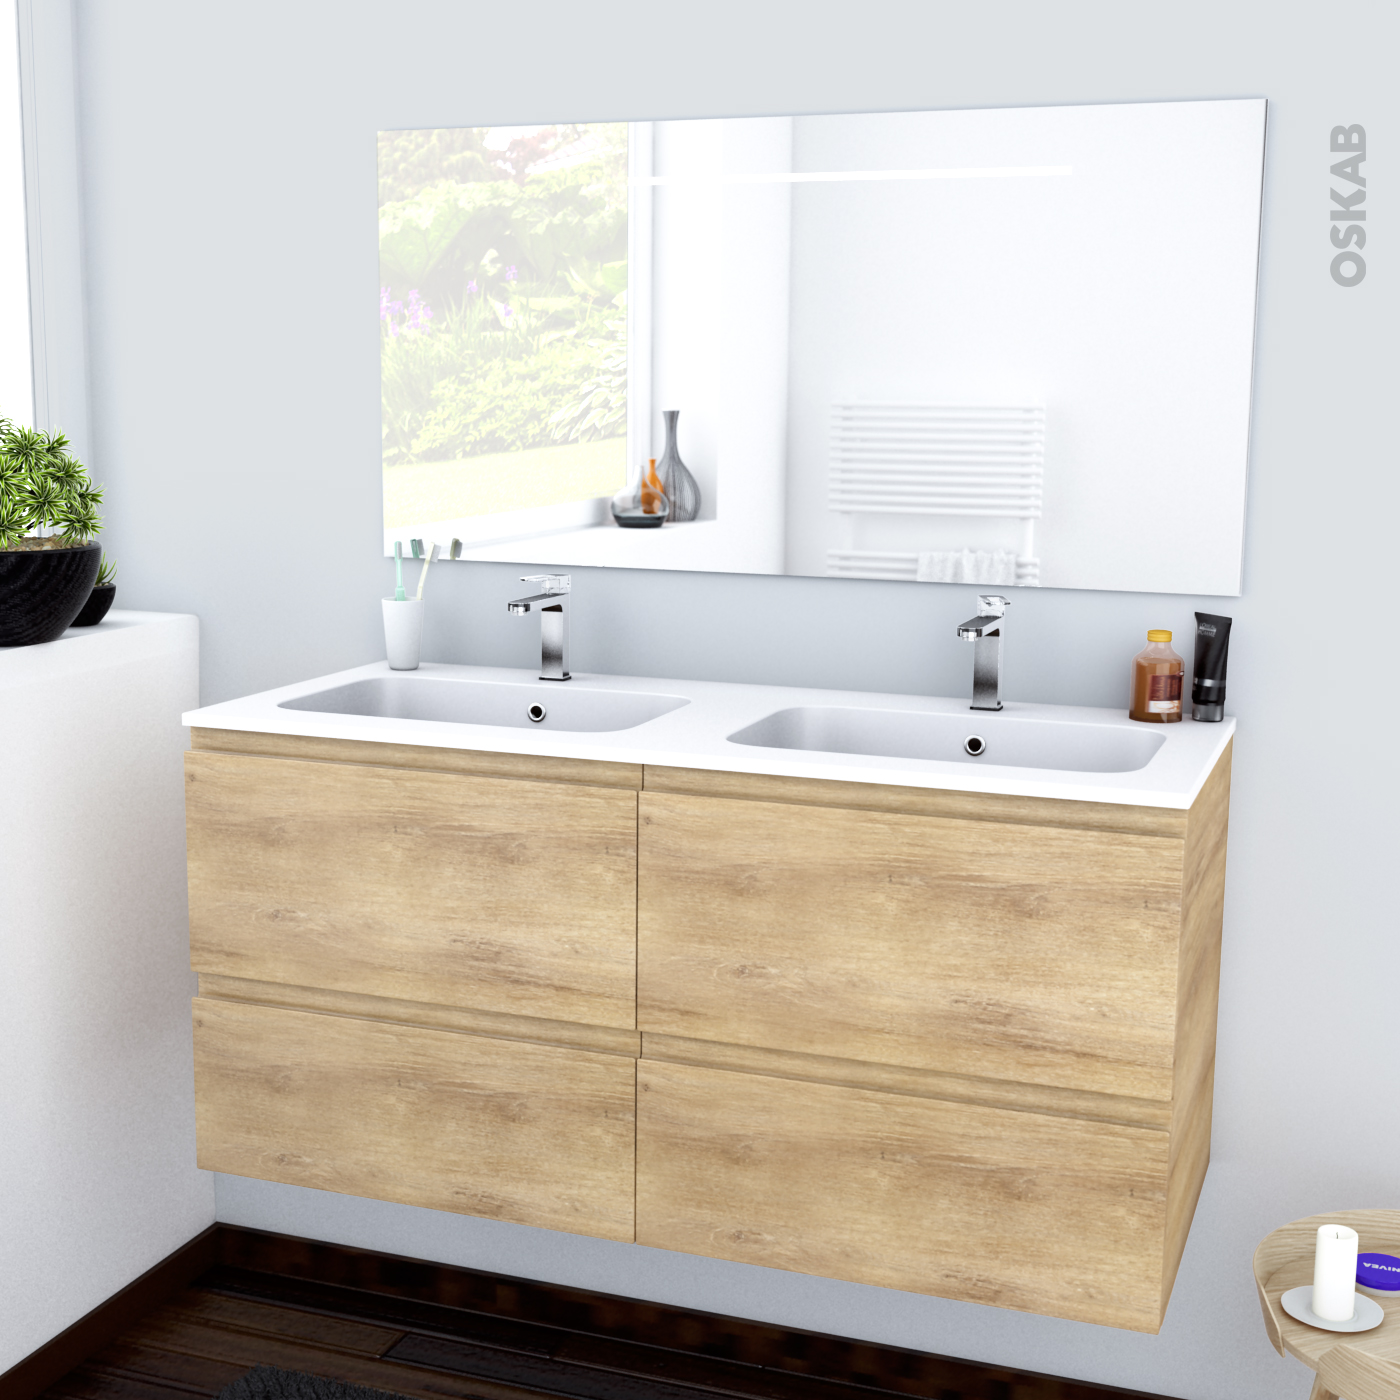 Lavabo double vasque retro beautiful lavabo double vasque for Miroir bois salle de bain